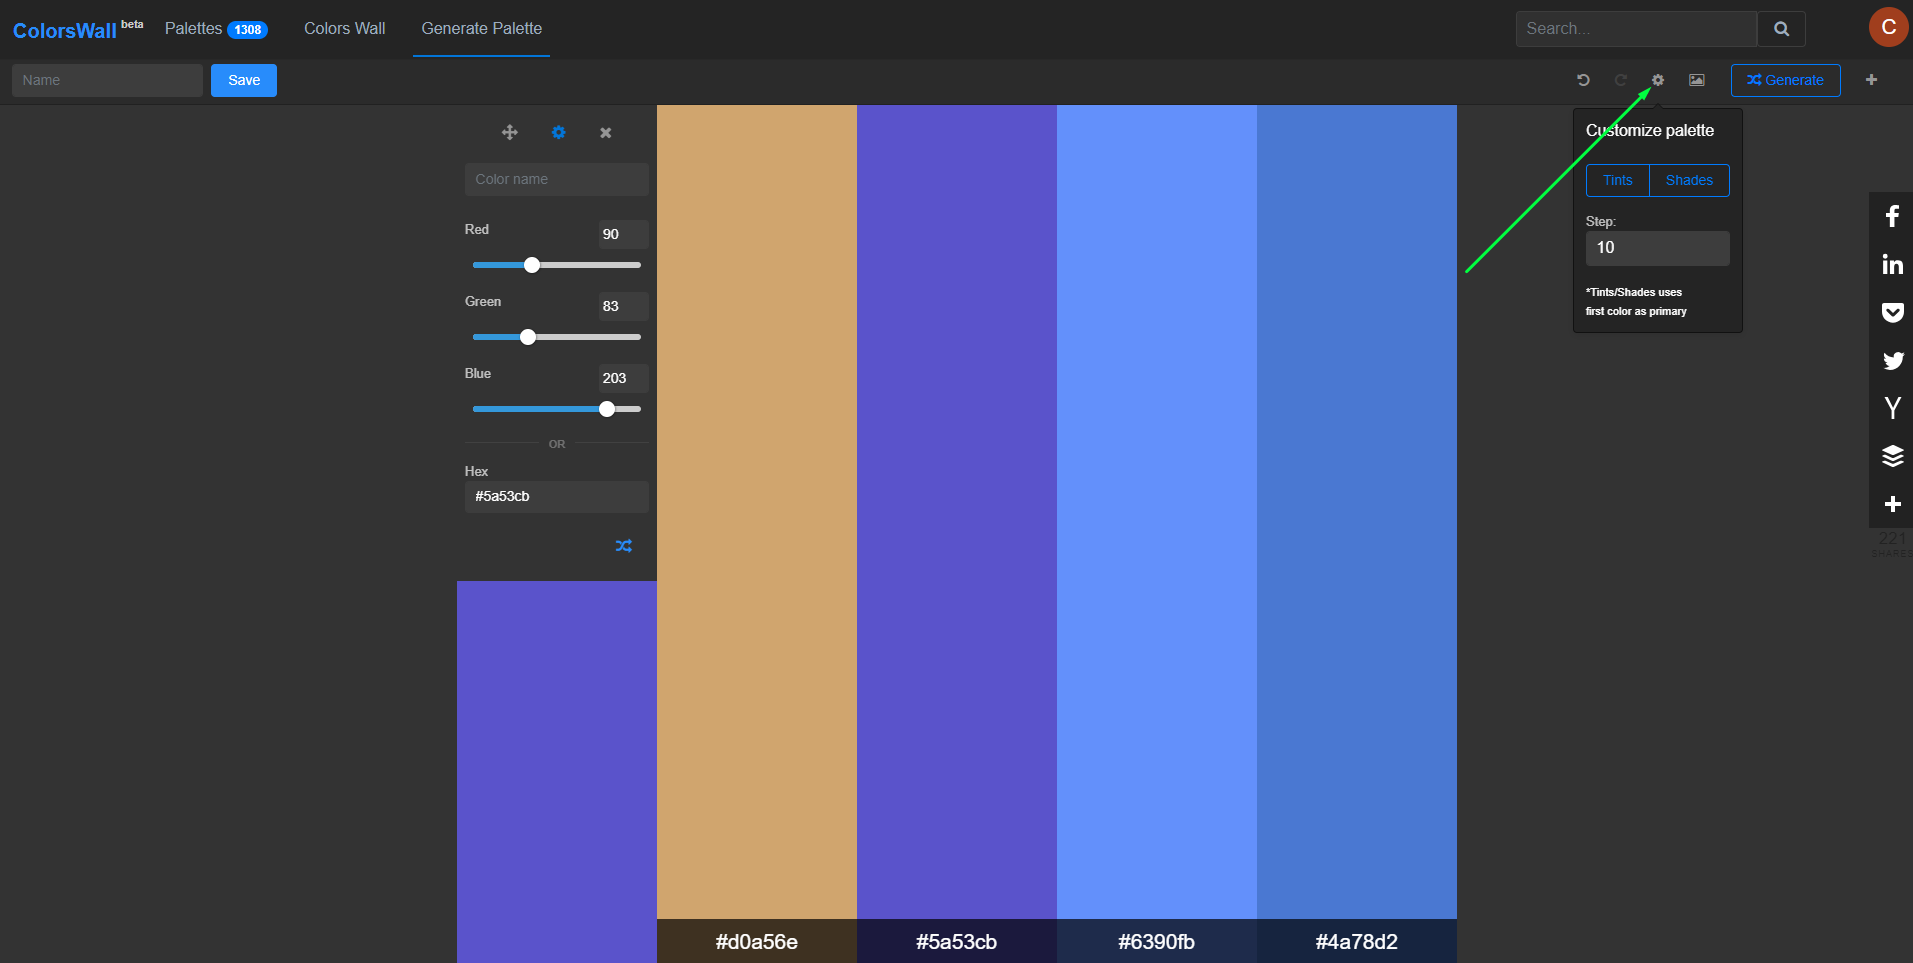 Customize palette